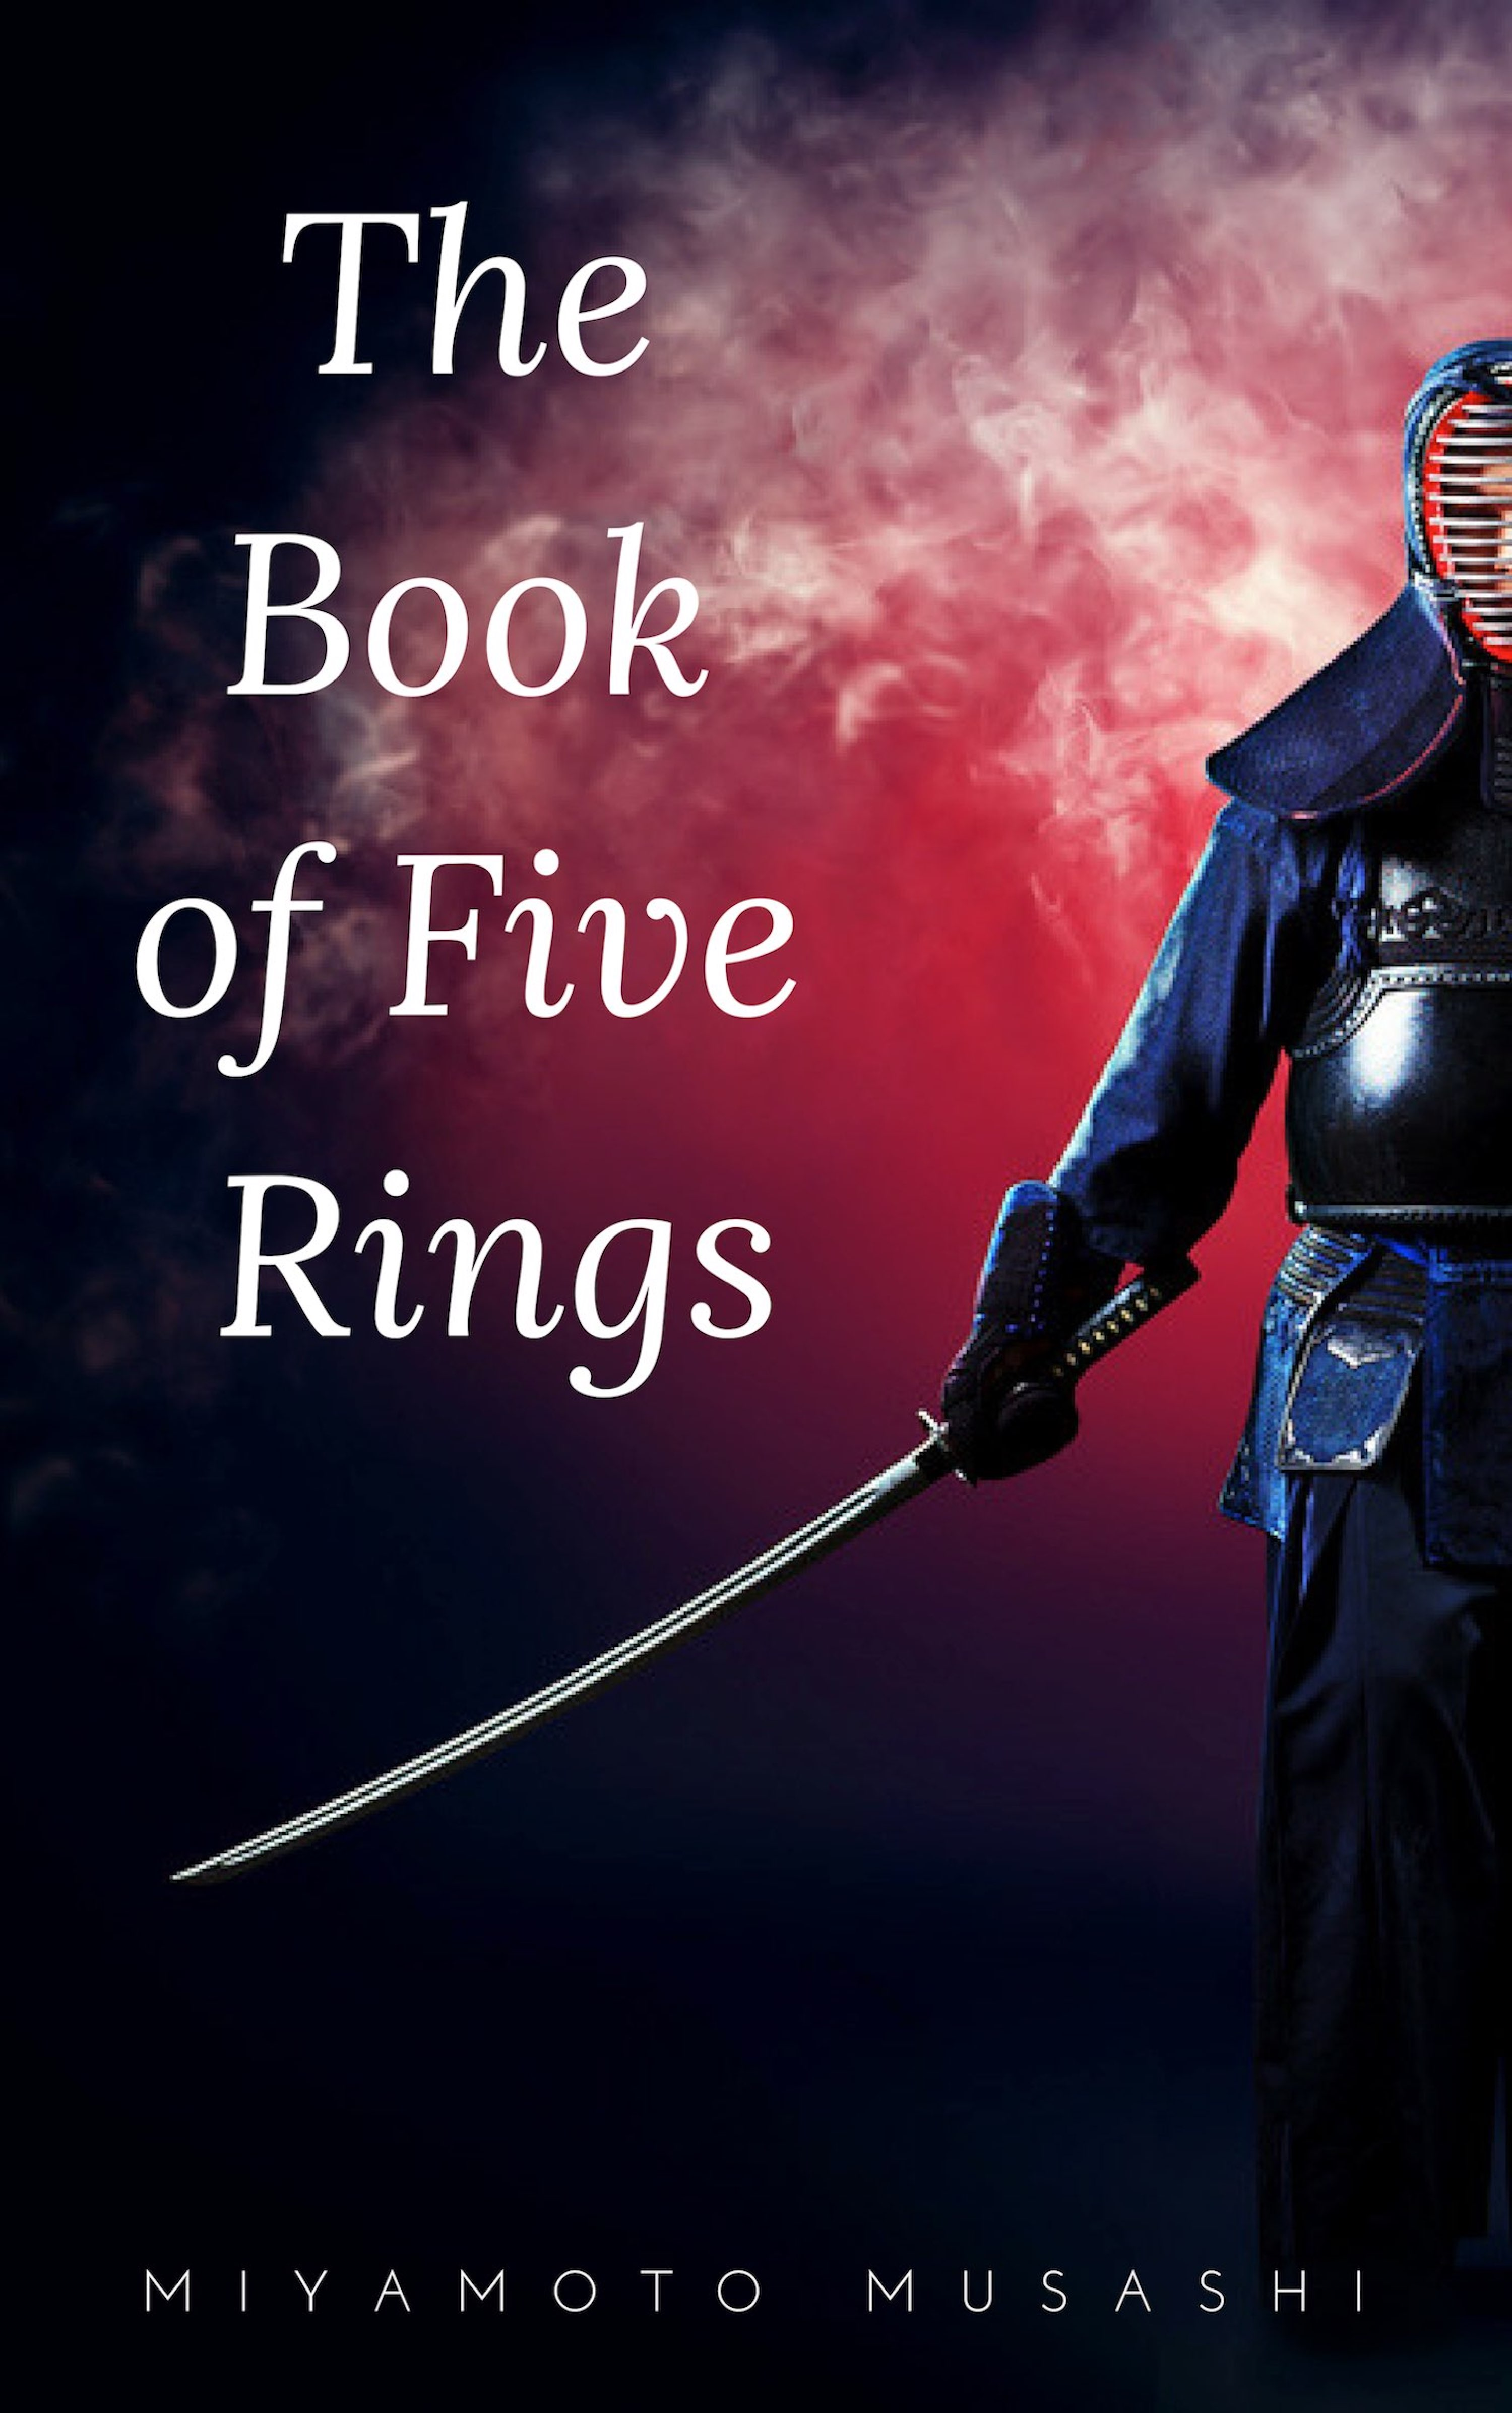 Miyamoto Musashi The Book of Five Rings (The Way of the Warrior Series) by Miyamoto Musashi paula determan the cry of a warrior